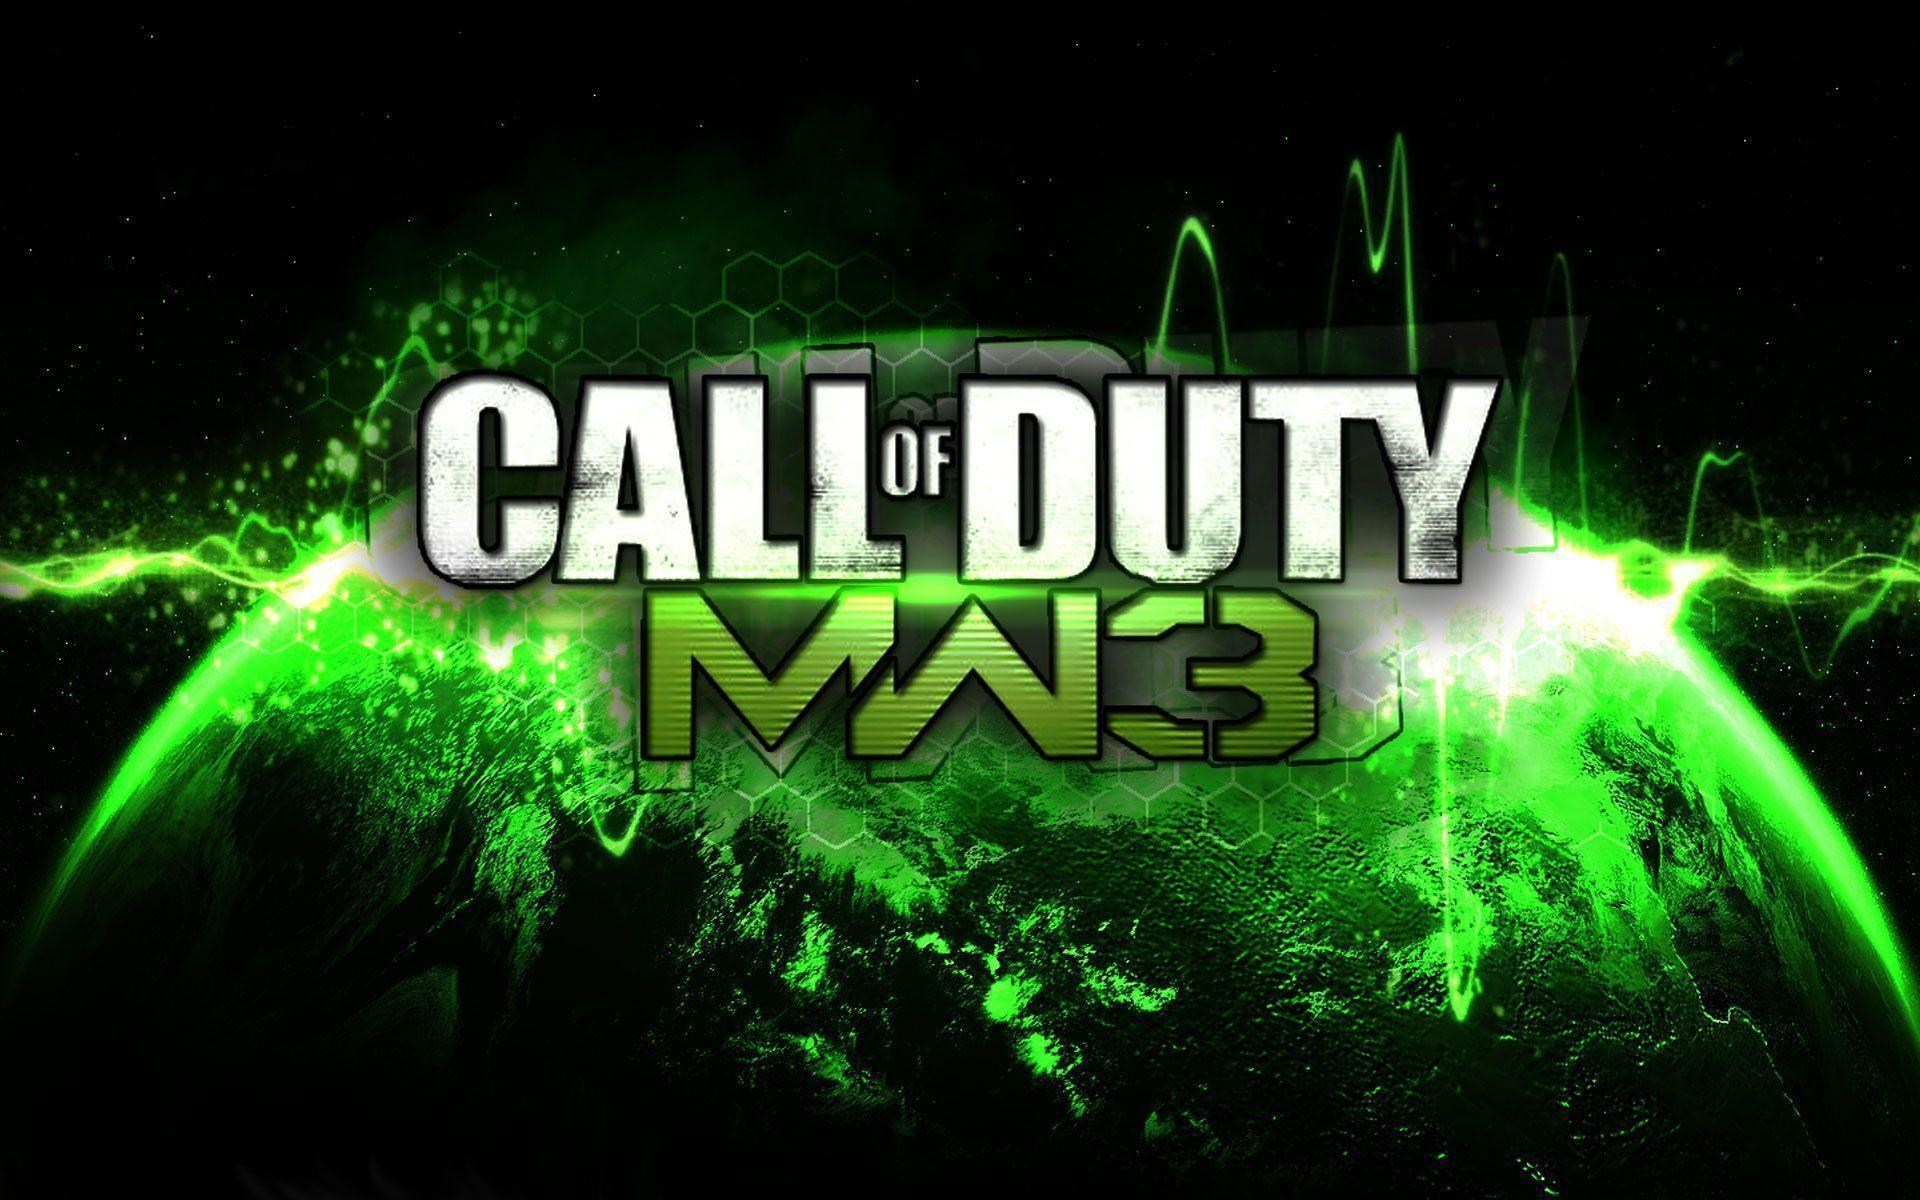 Call of duty modern warfare 3 wallpapers wallpaper cave for Cool modern wallpapers